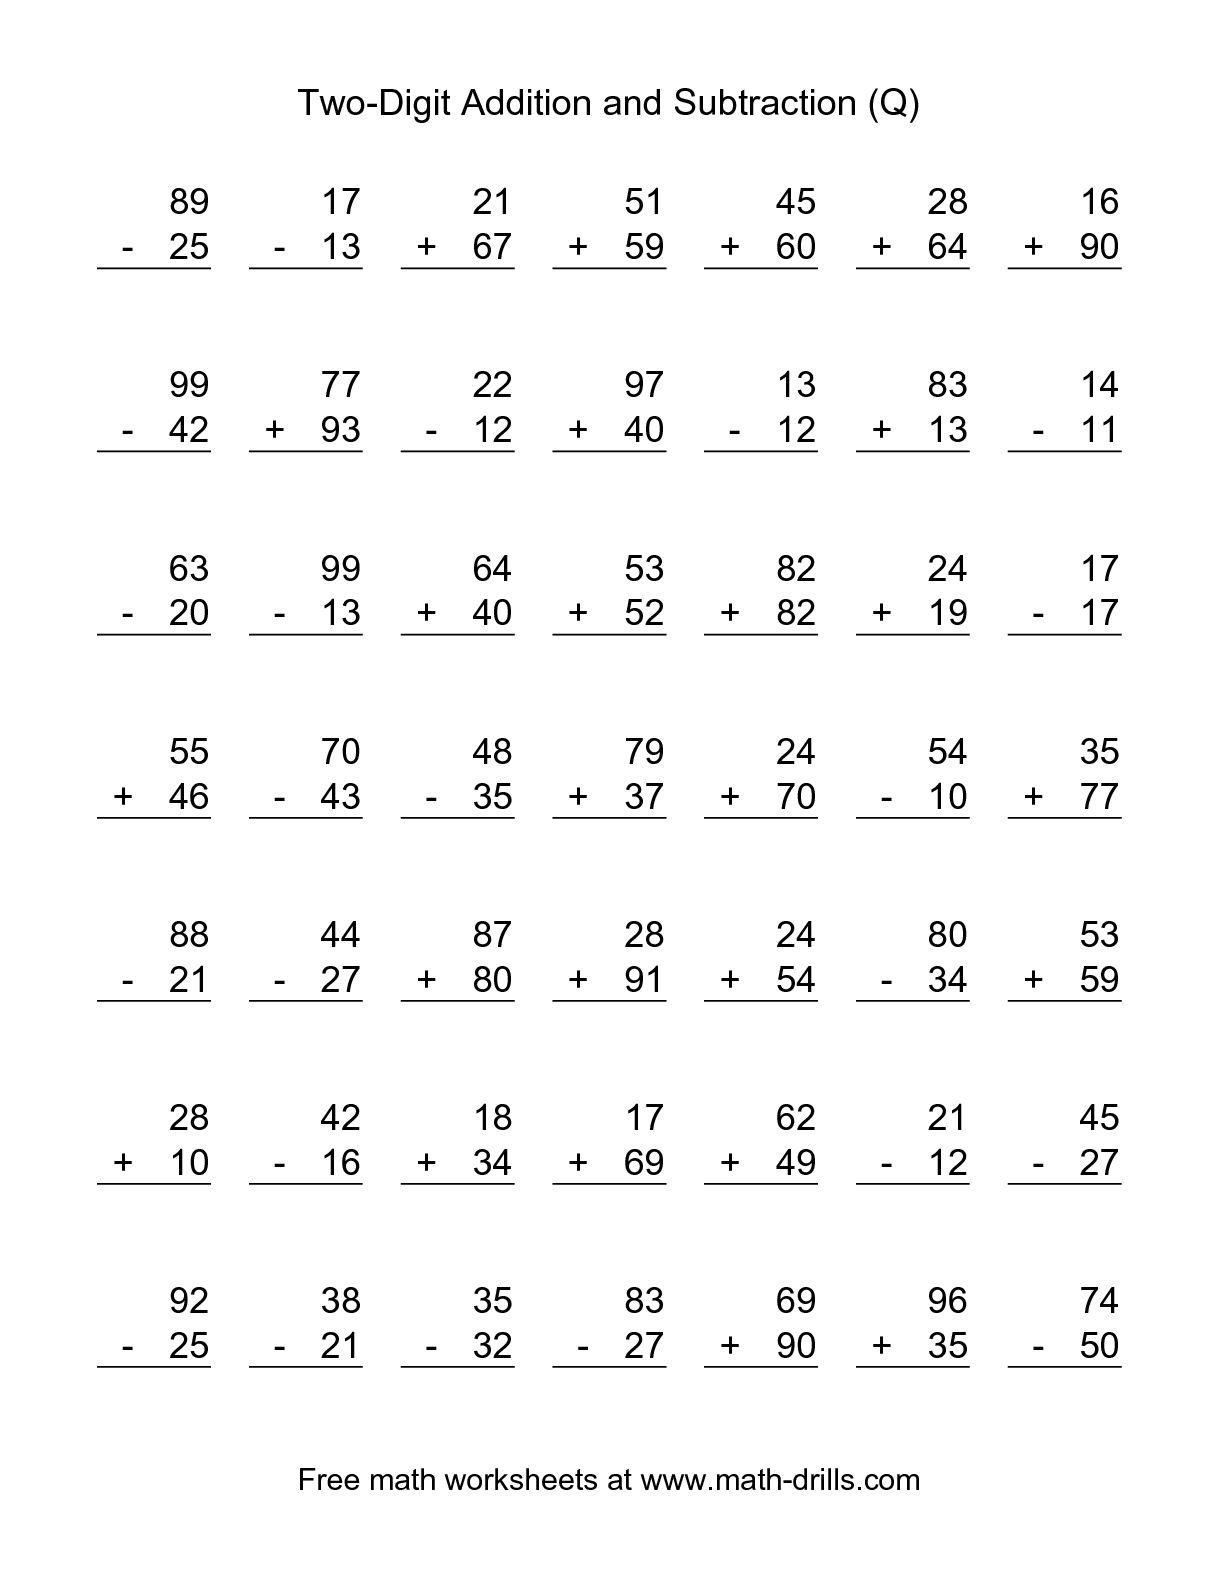 Free Printable Math Worksheets 2nd Grade Subtraction 3 In